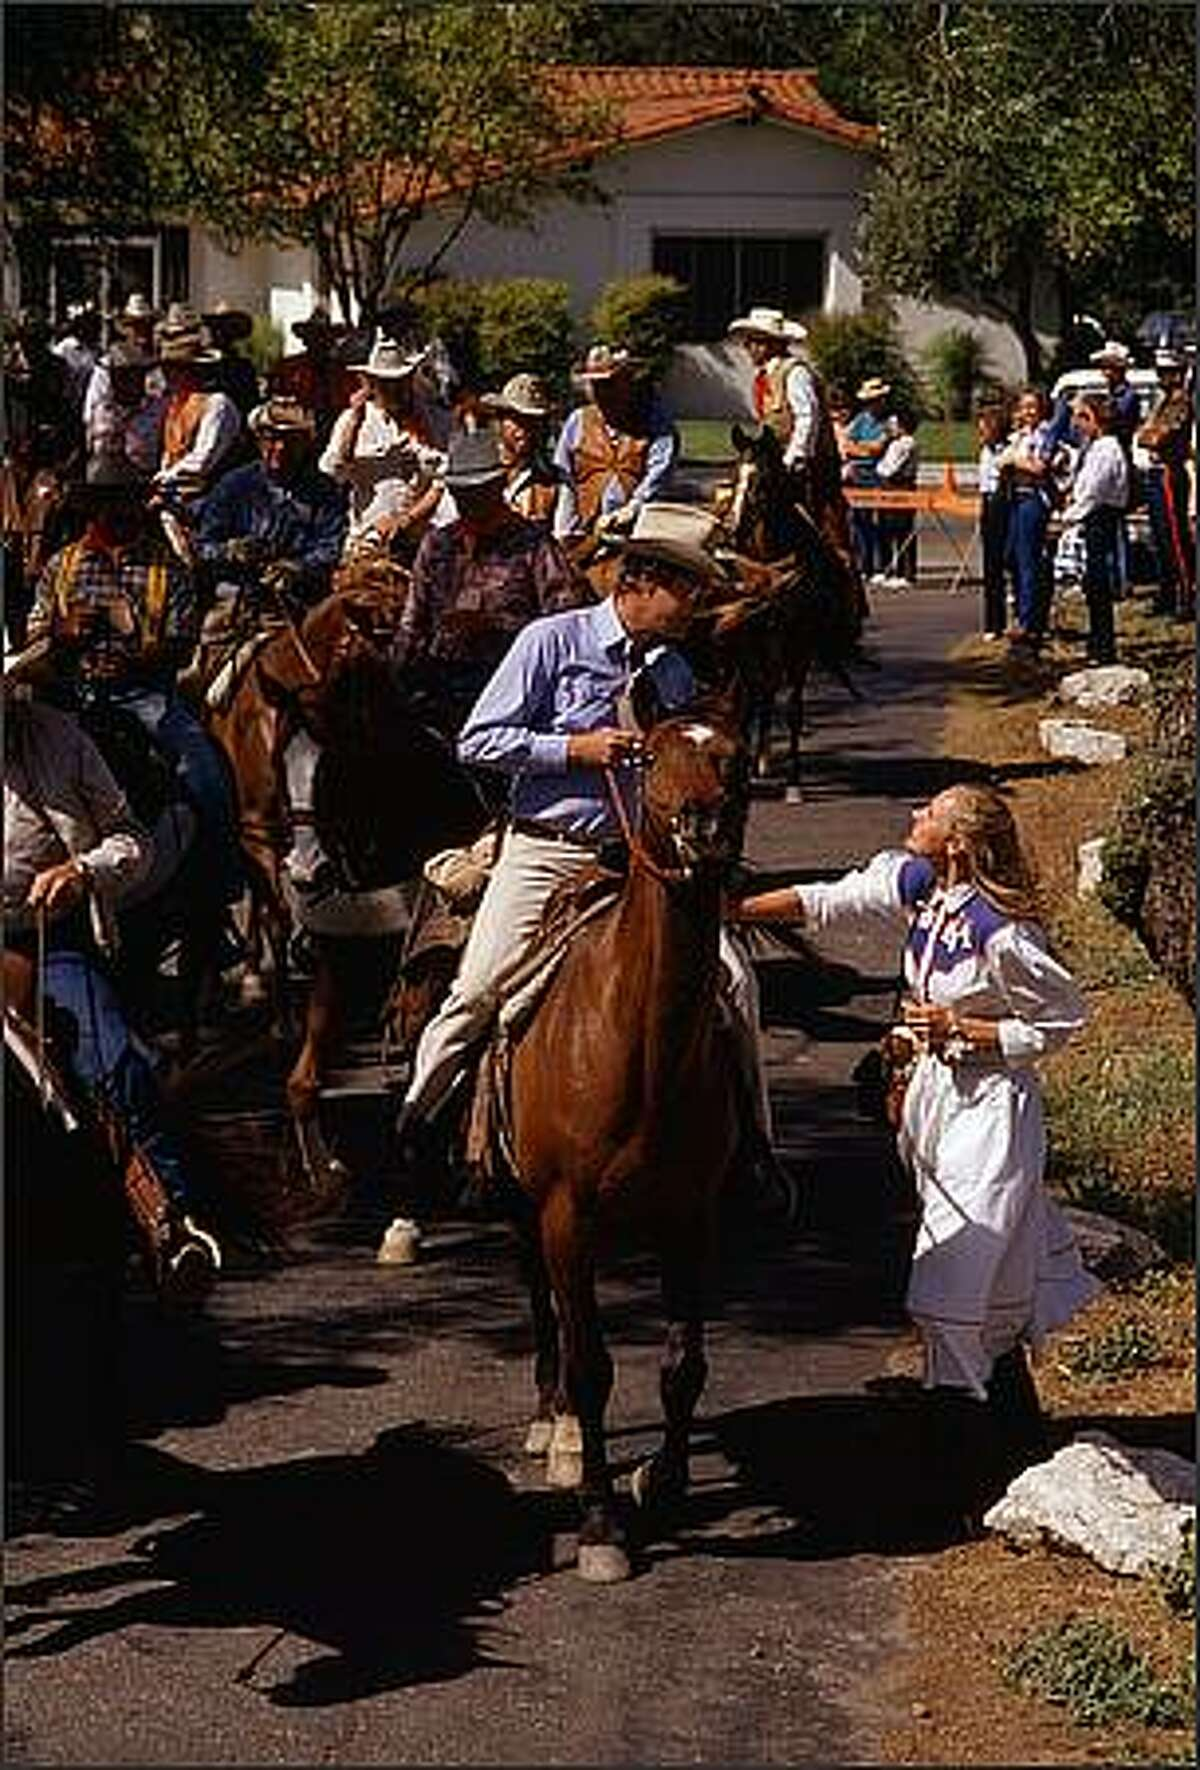 May 7, 1988, Solvang, California: Wealthy San Francisco securities executive and Ranchero guest Claxton Long is approached by an unidentified woman as he enters the Santa Ines Mission Grounds on his way to the Ranchero send-off ceremonies. Later in the week, during the ride, Long died as a result of a bar brawl with a local welder. Local newspapers have reported that there is a growing resentment for the annual gathering of wealthy and powerful men. Photo by: Tomas / Polaris